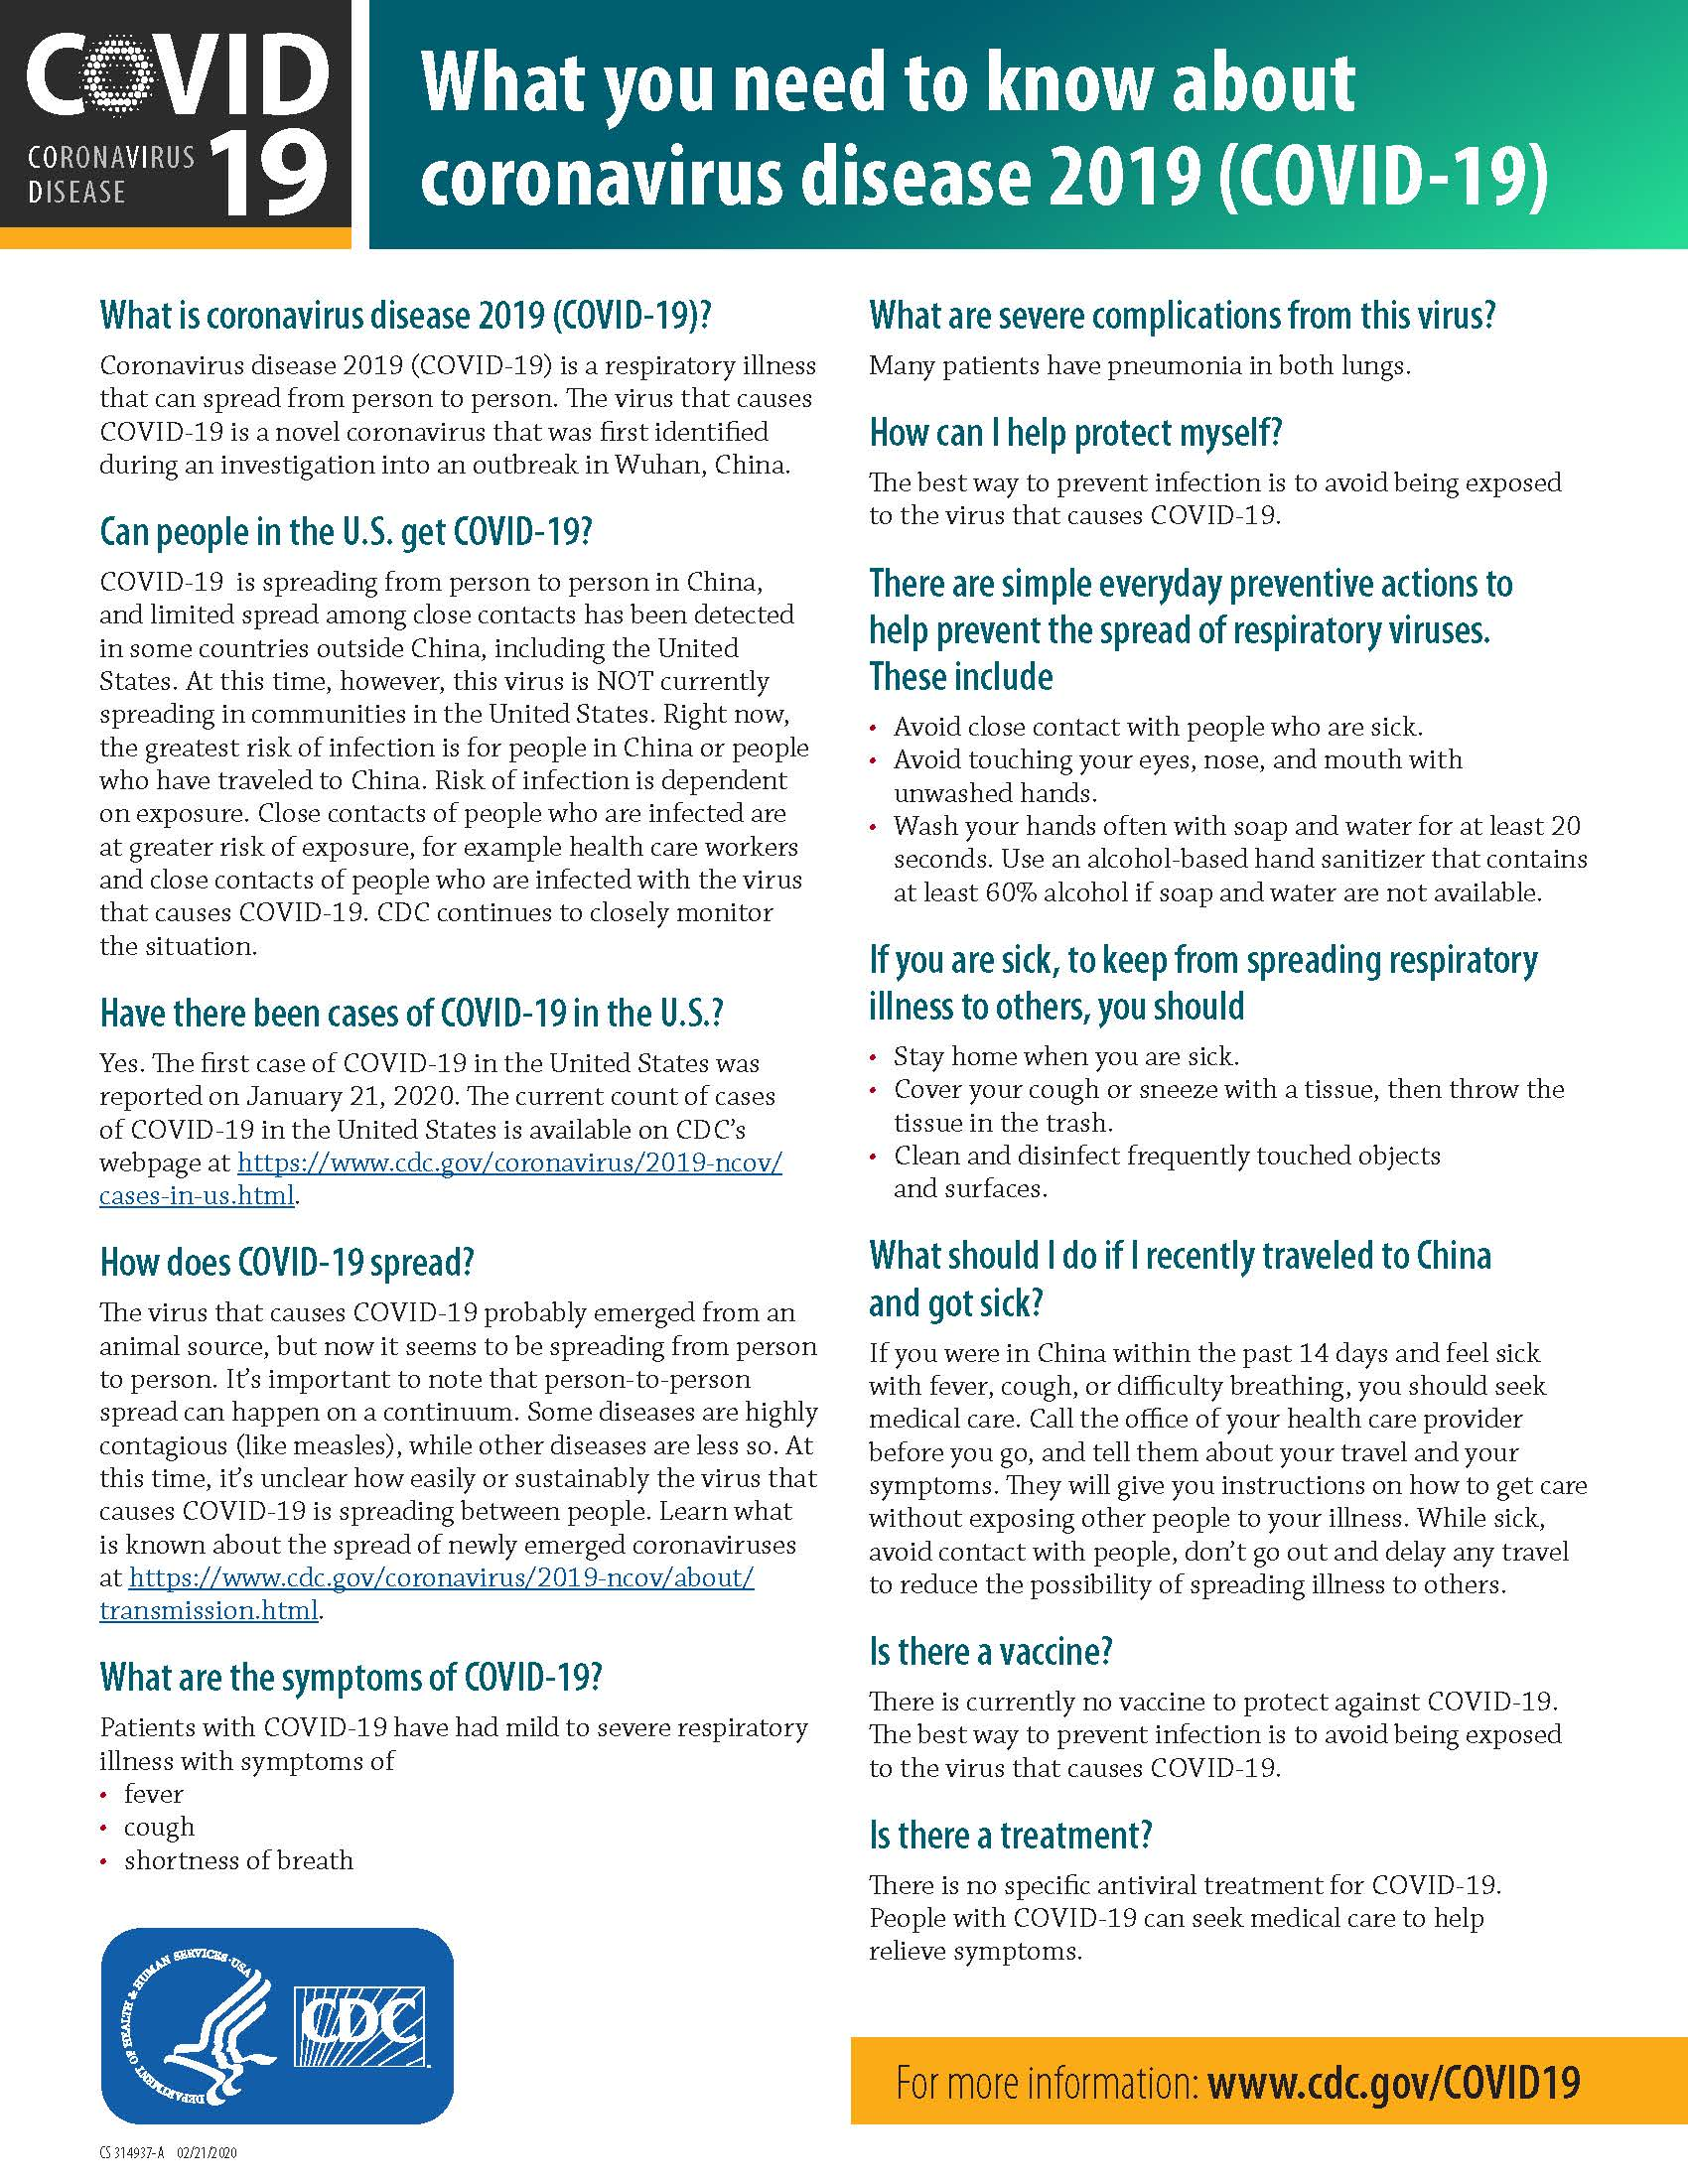 COVID-19 Fact Sheet from the CDC